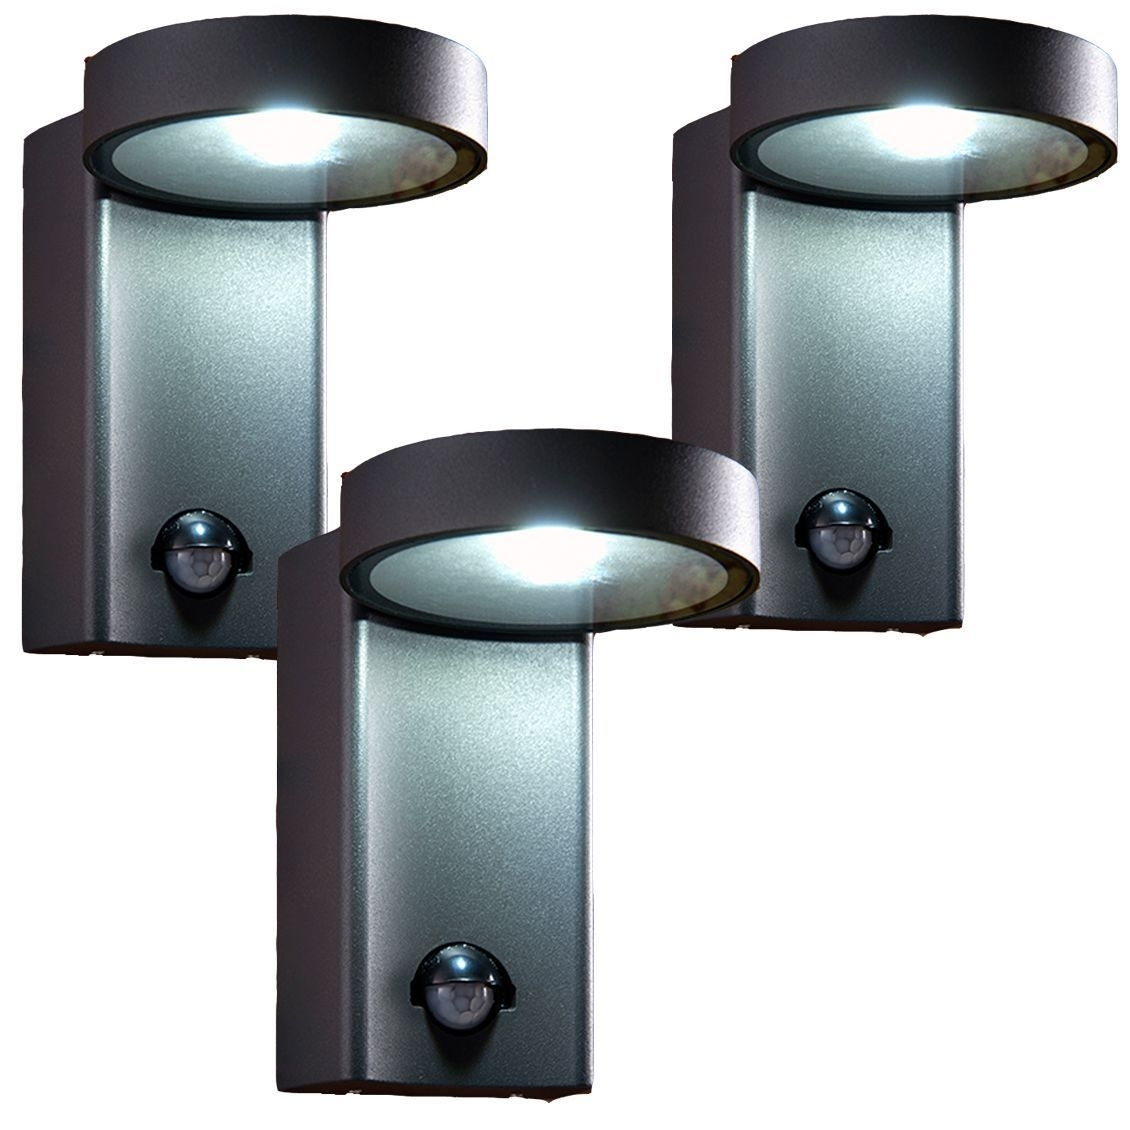 3 X Saxby 67696 Oreti Pir Dark Matt Anthracite 10W Ip44 Outdoor Wall Throughout Outdoor Pir Wall Lights (#1 of 15)